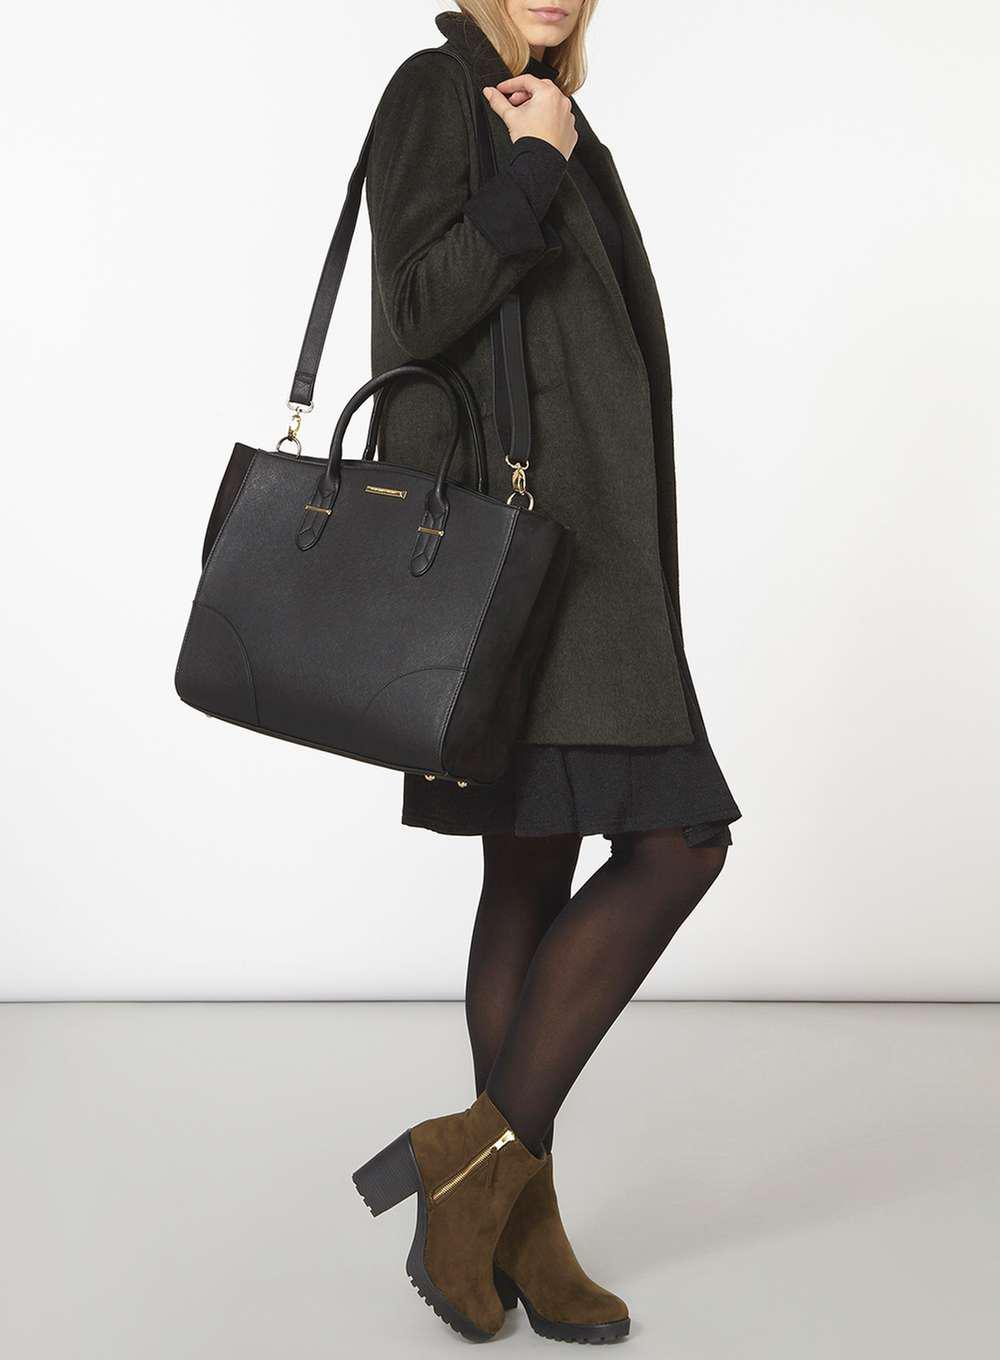 004b5bd7a15a Lyst - Dorothy Perkins Black Oversized Tote Bag in Black